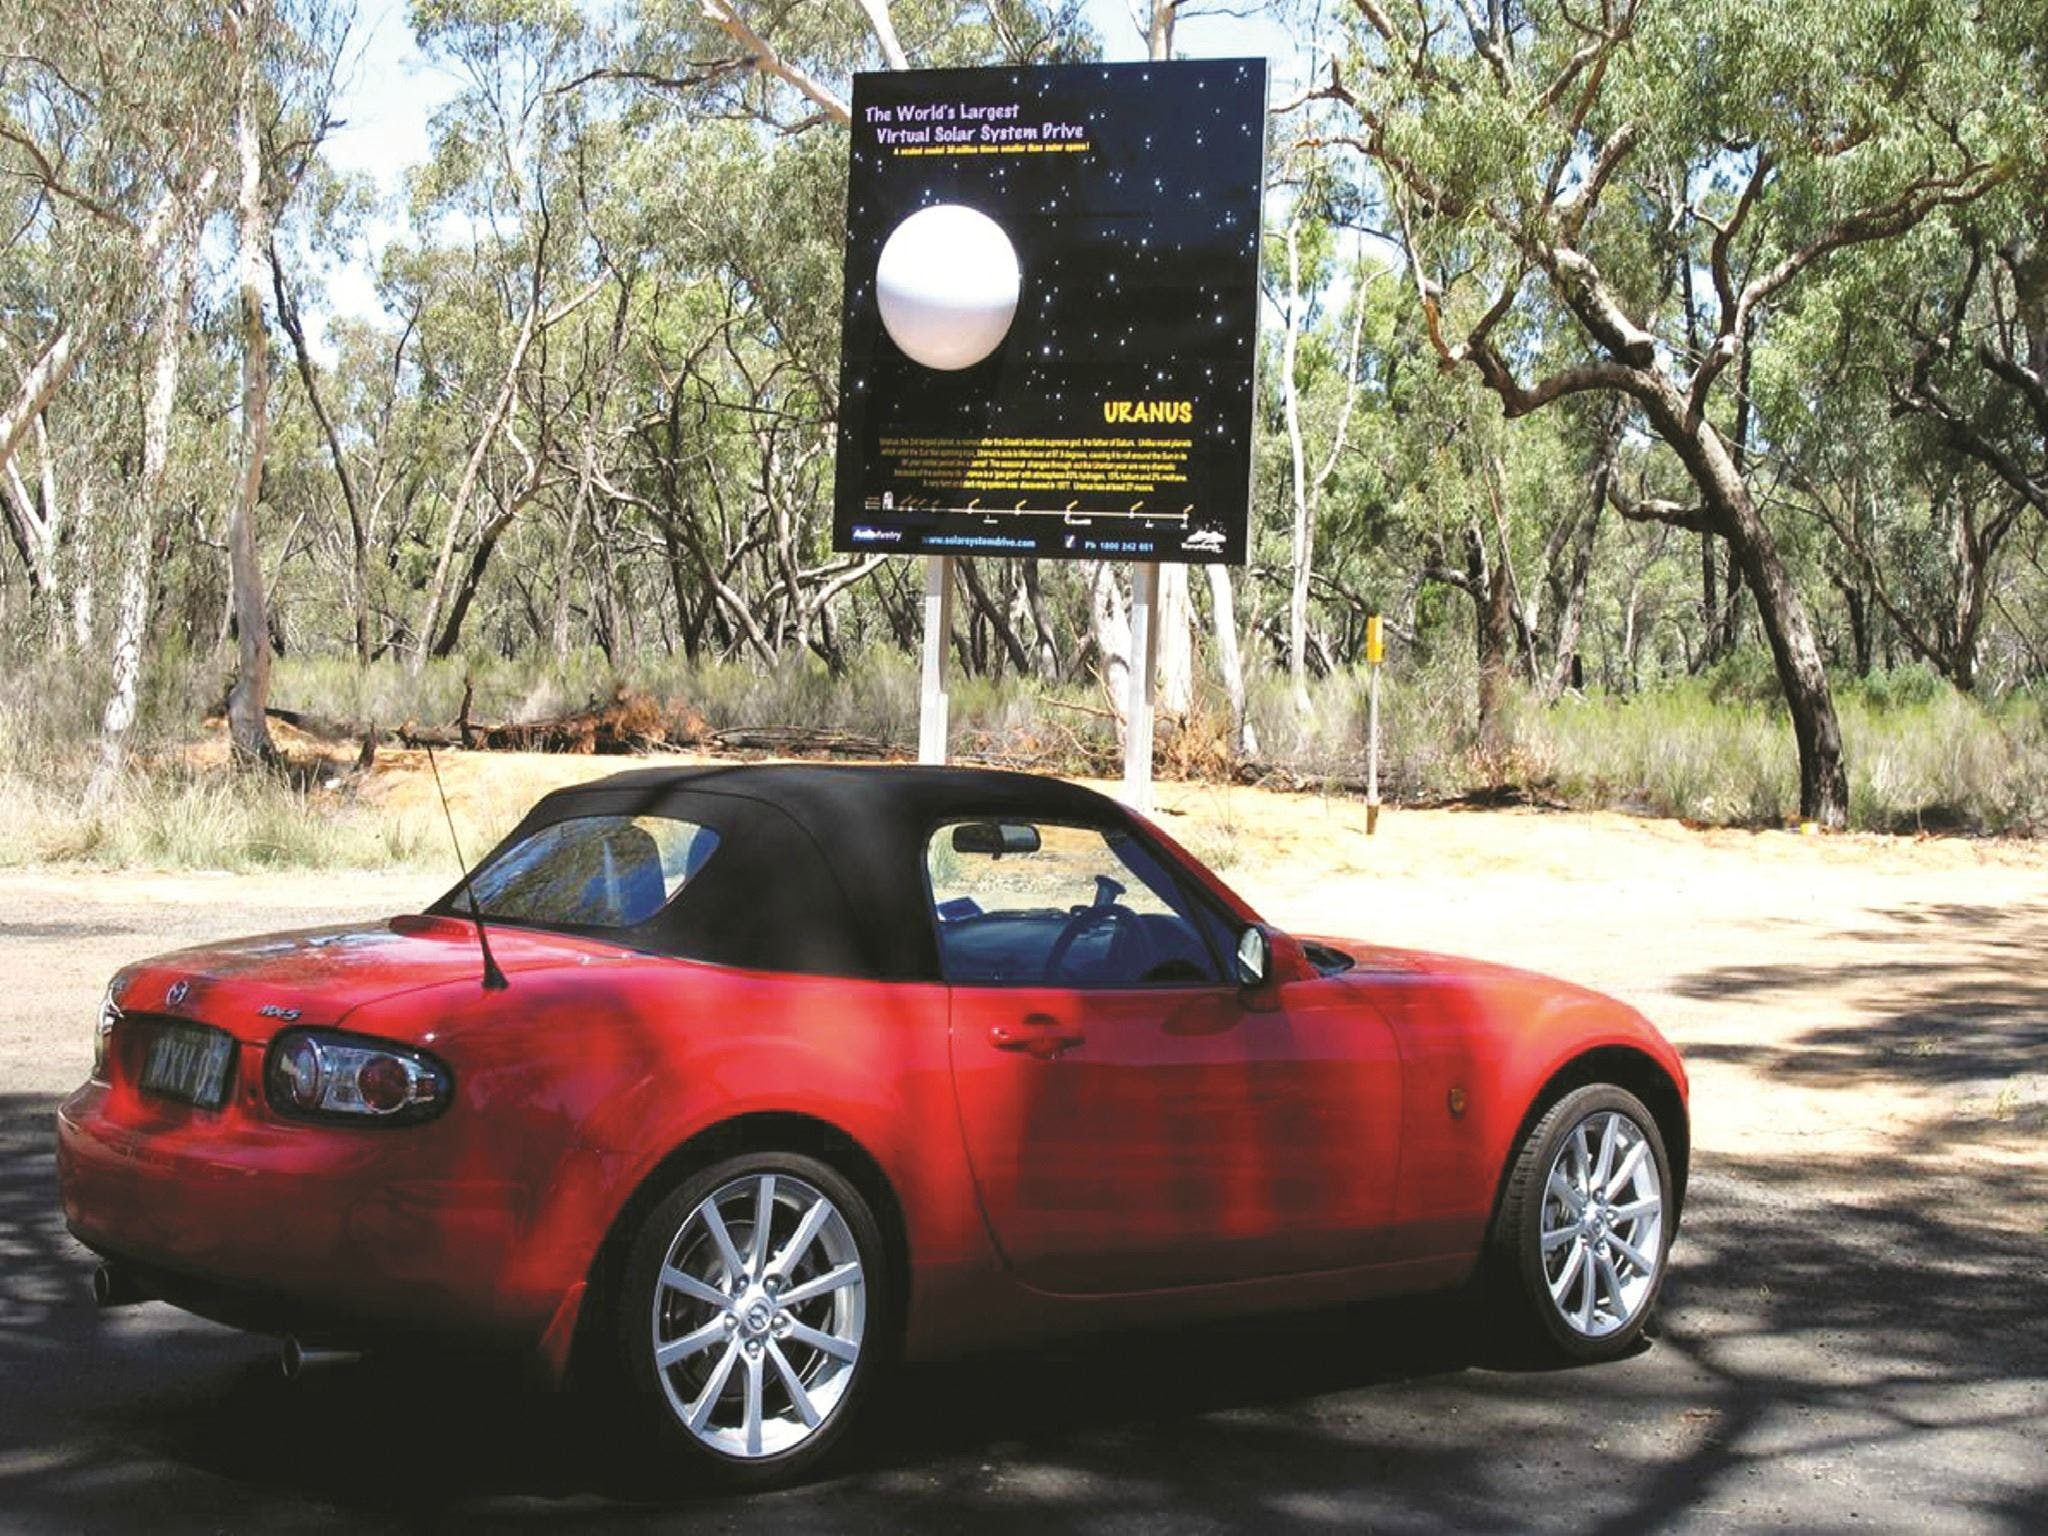 Worlds Largest Virtual Solar System Drive - Attractions Perth